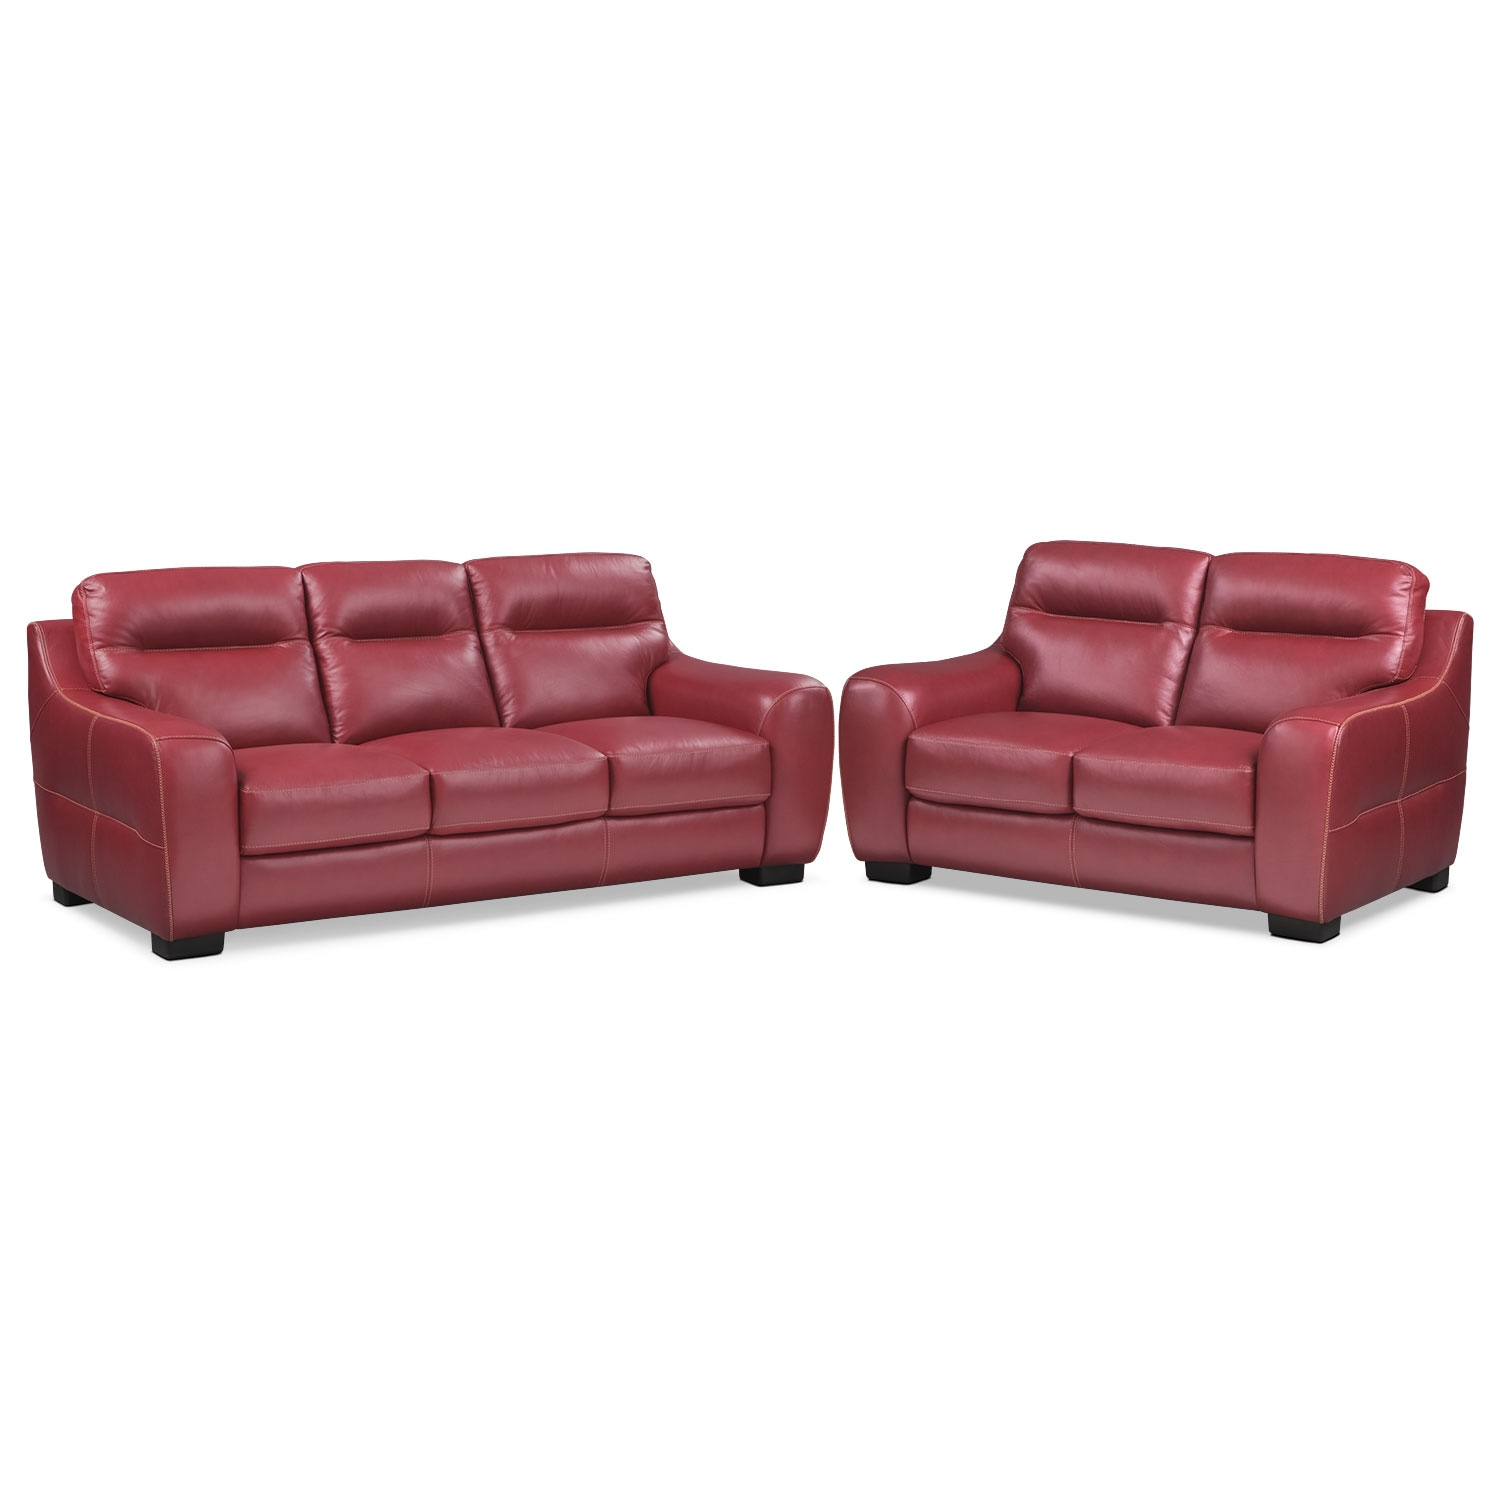 Living Room Furniture - Rocco Red 2 Pc. Living Room